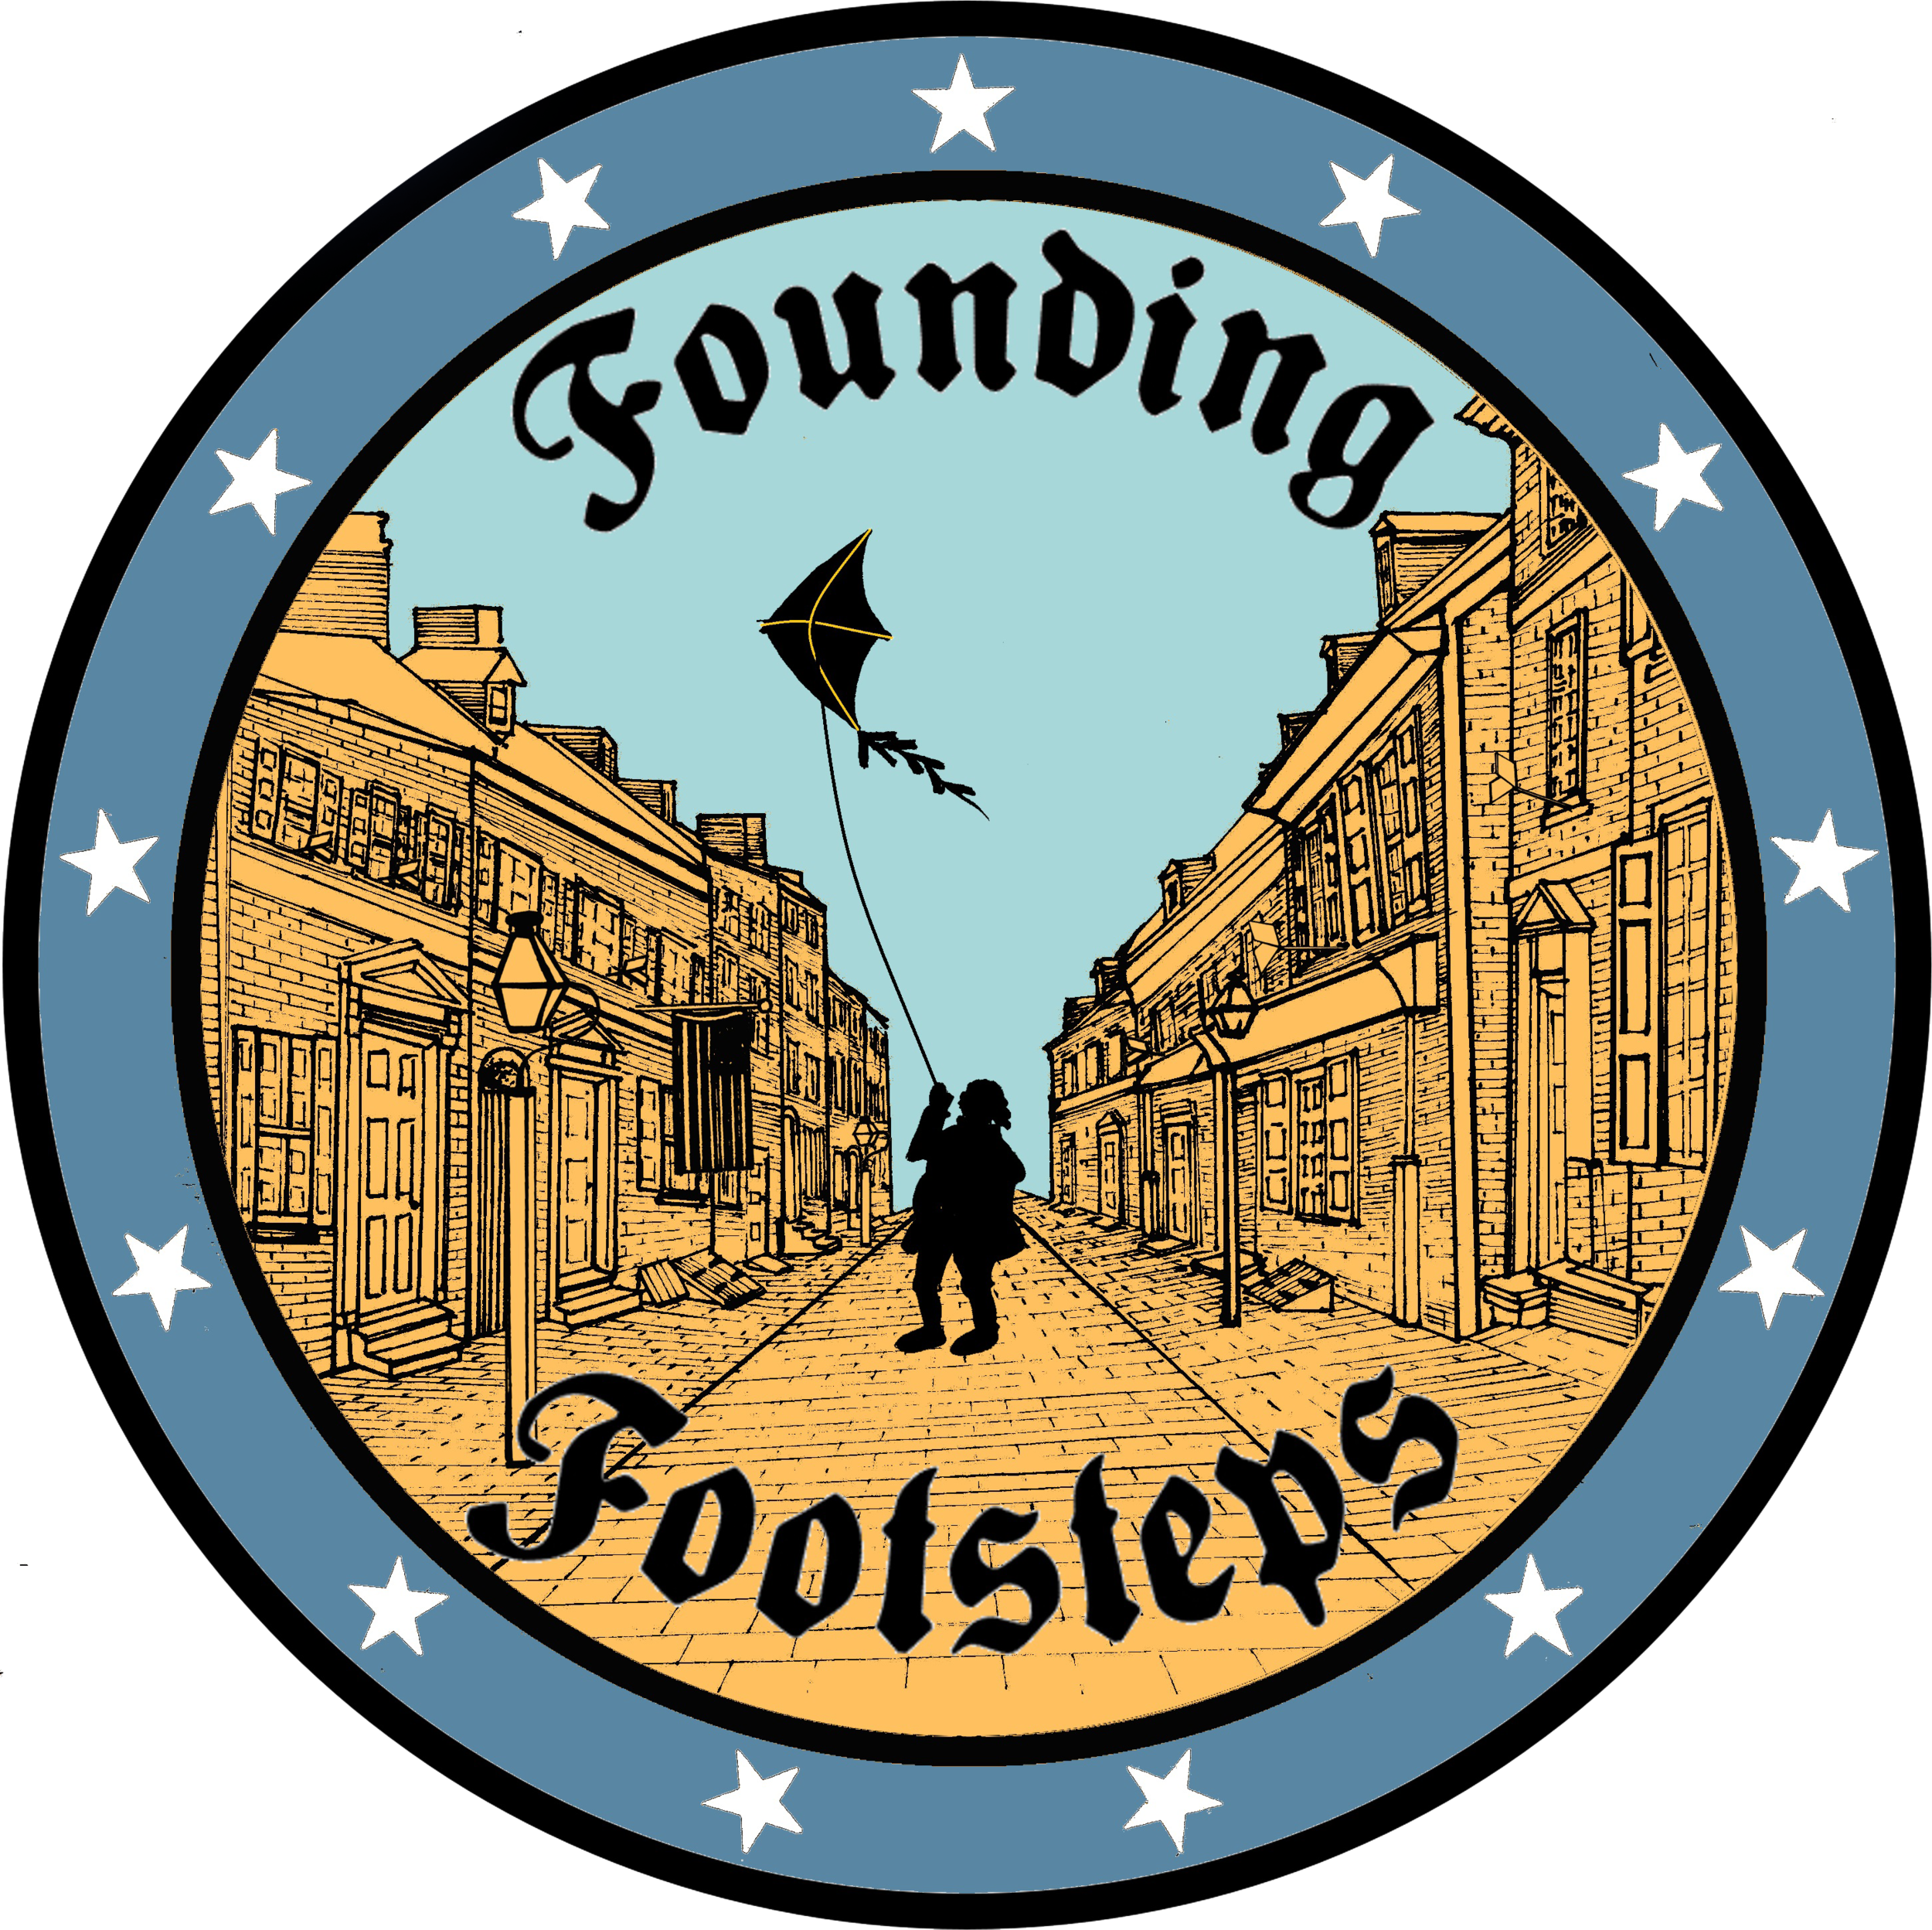 founding-footsteps-logo.png